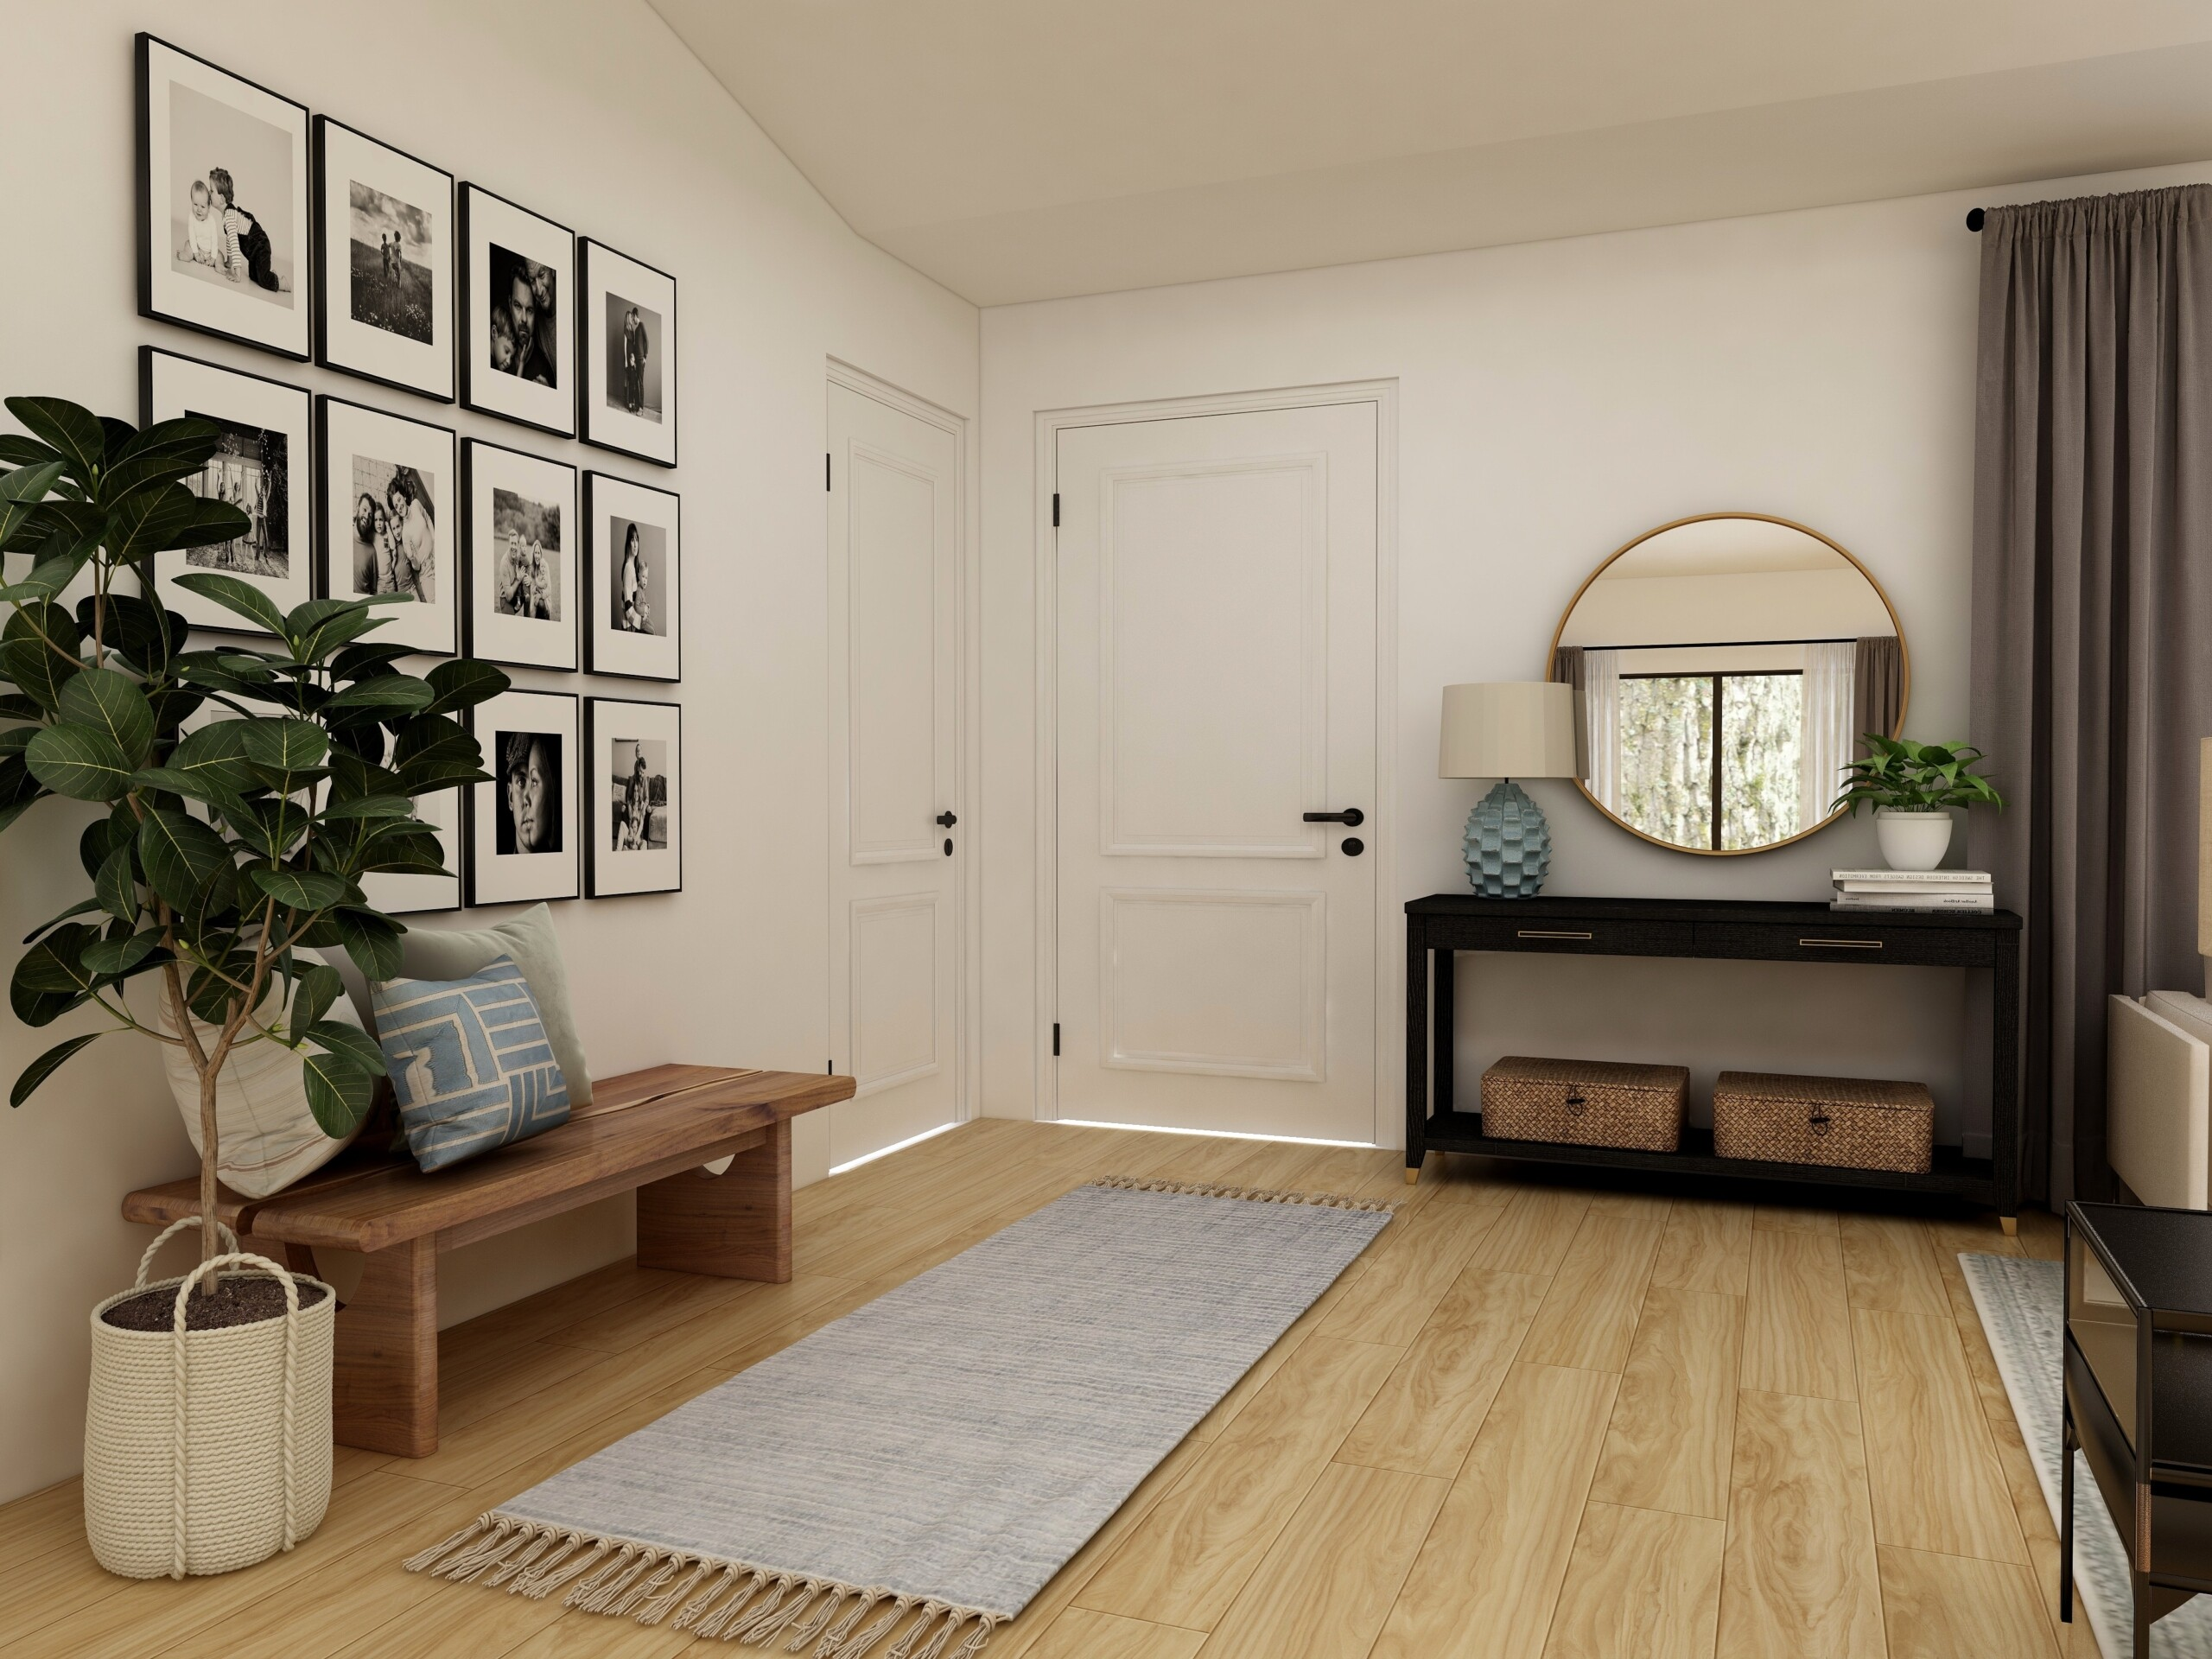 How to Properly Care for Hardwood Floors